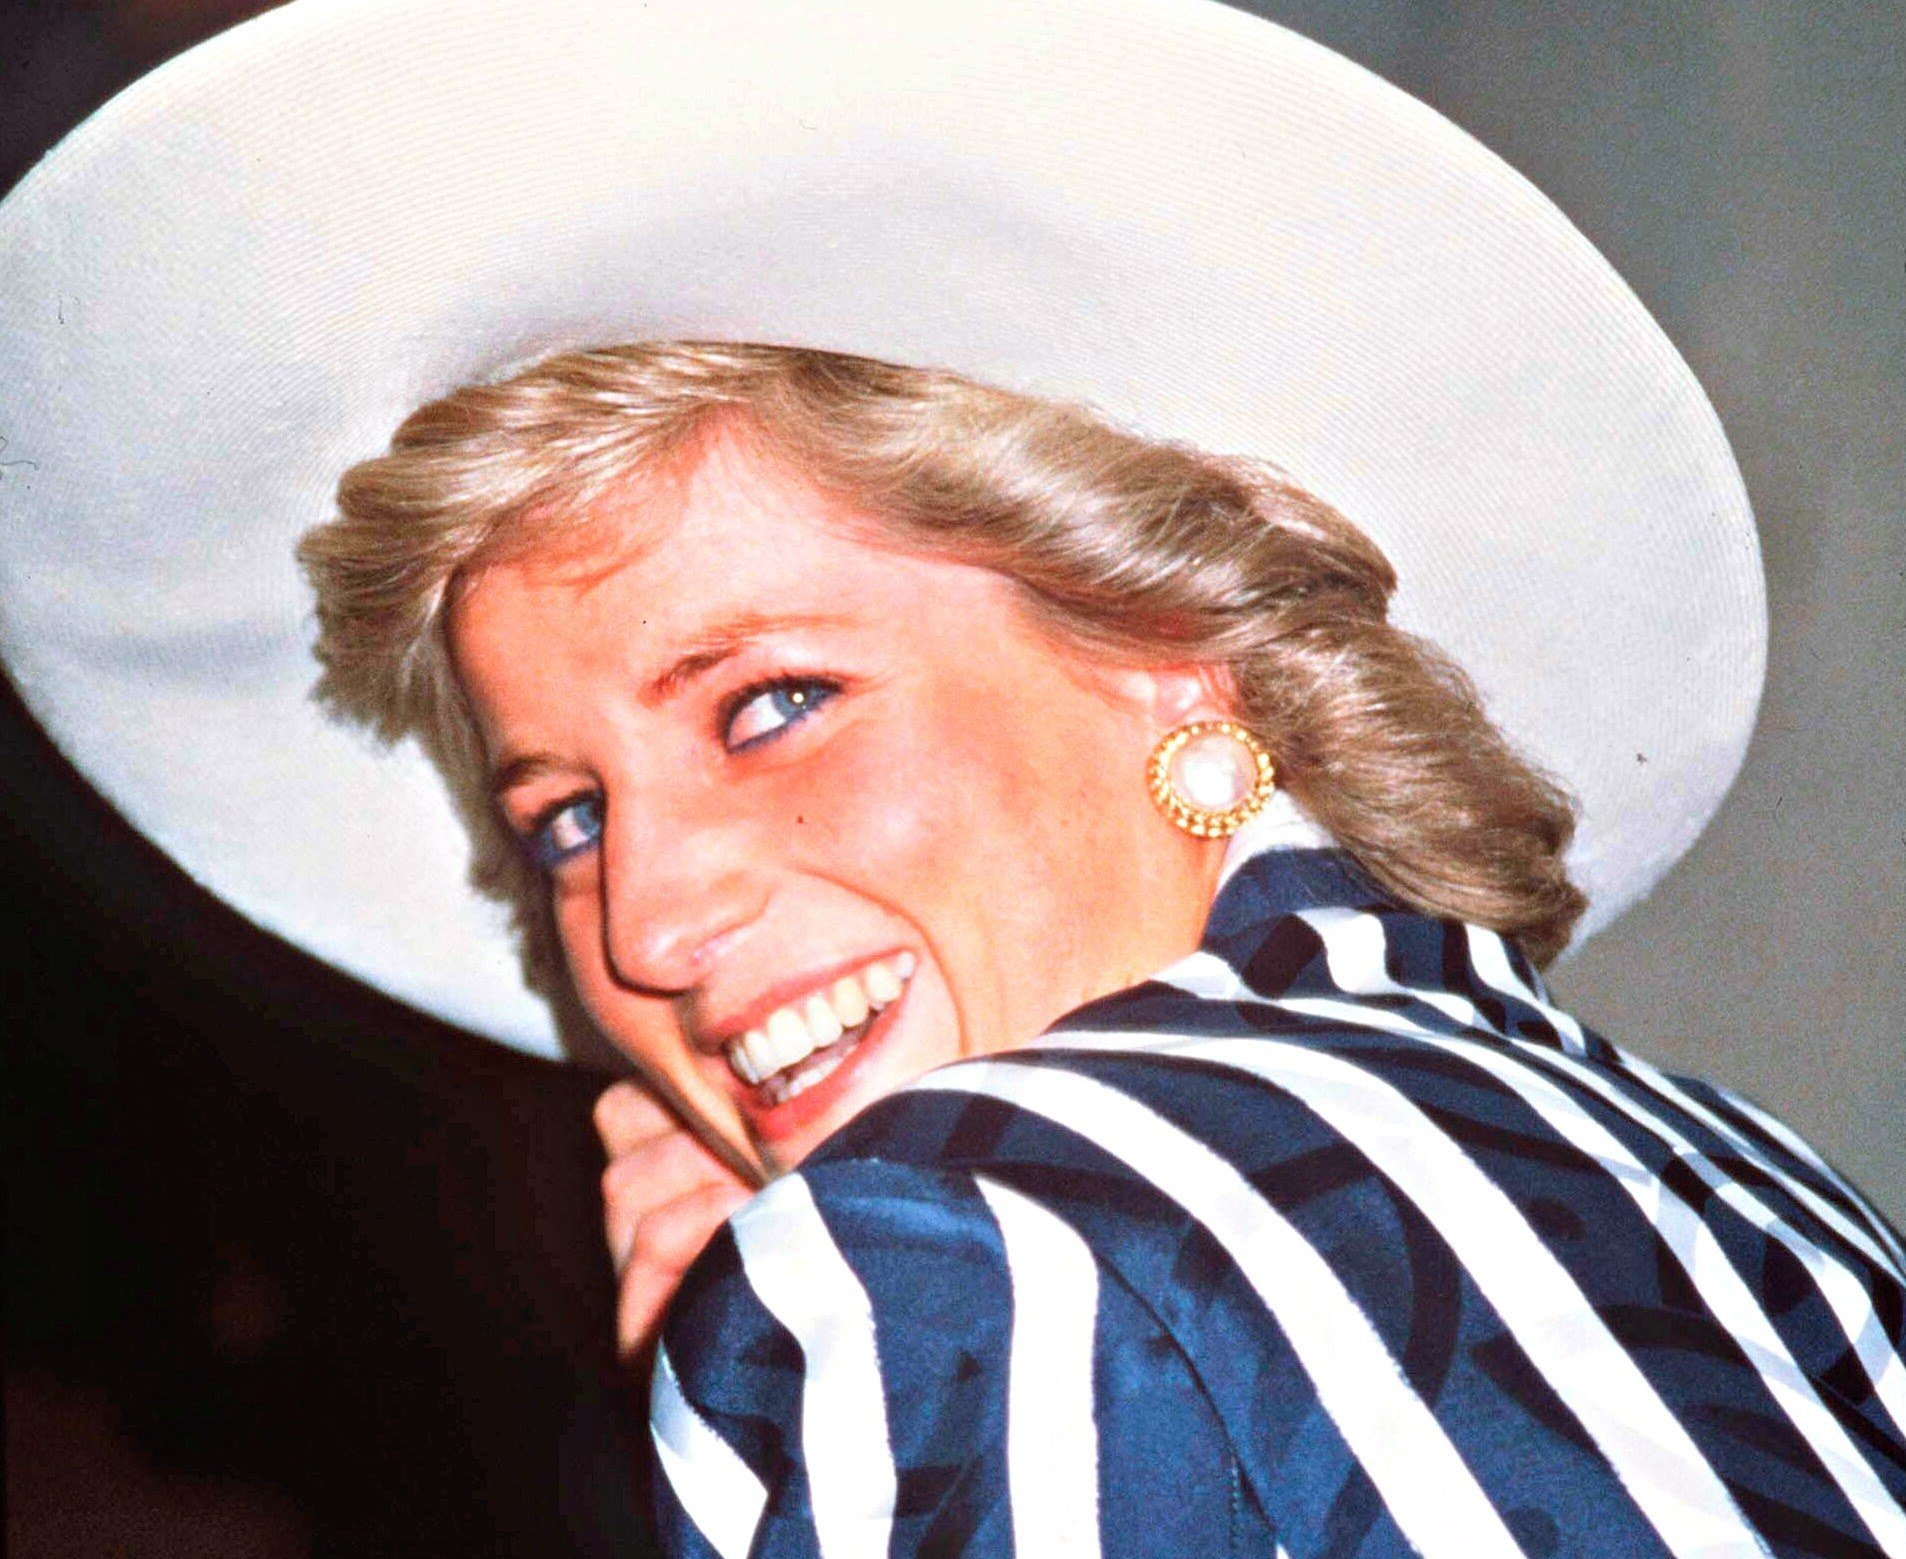 The first two minutes of this new Princess Diana documentary will give you chills: https://t.co/CO6POugTn2 https://t.co/pSfY7p6h3l